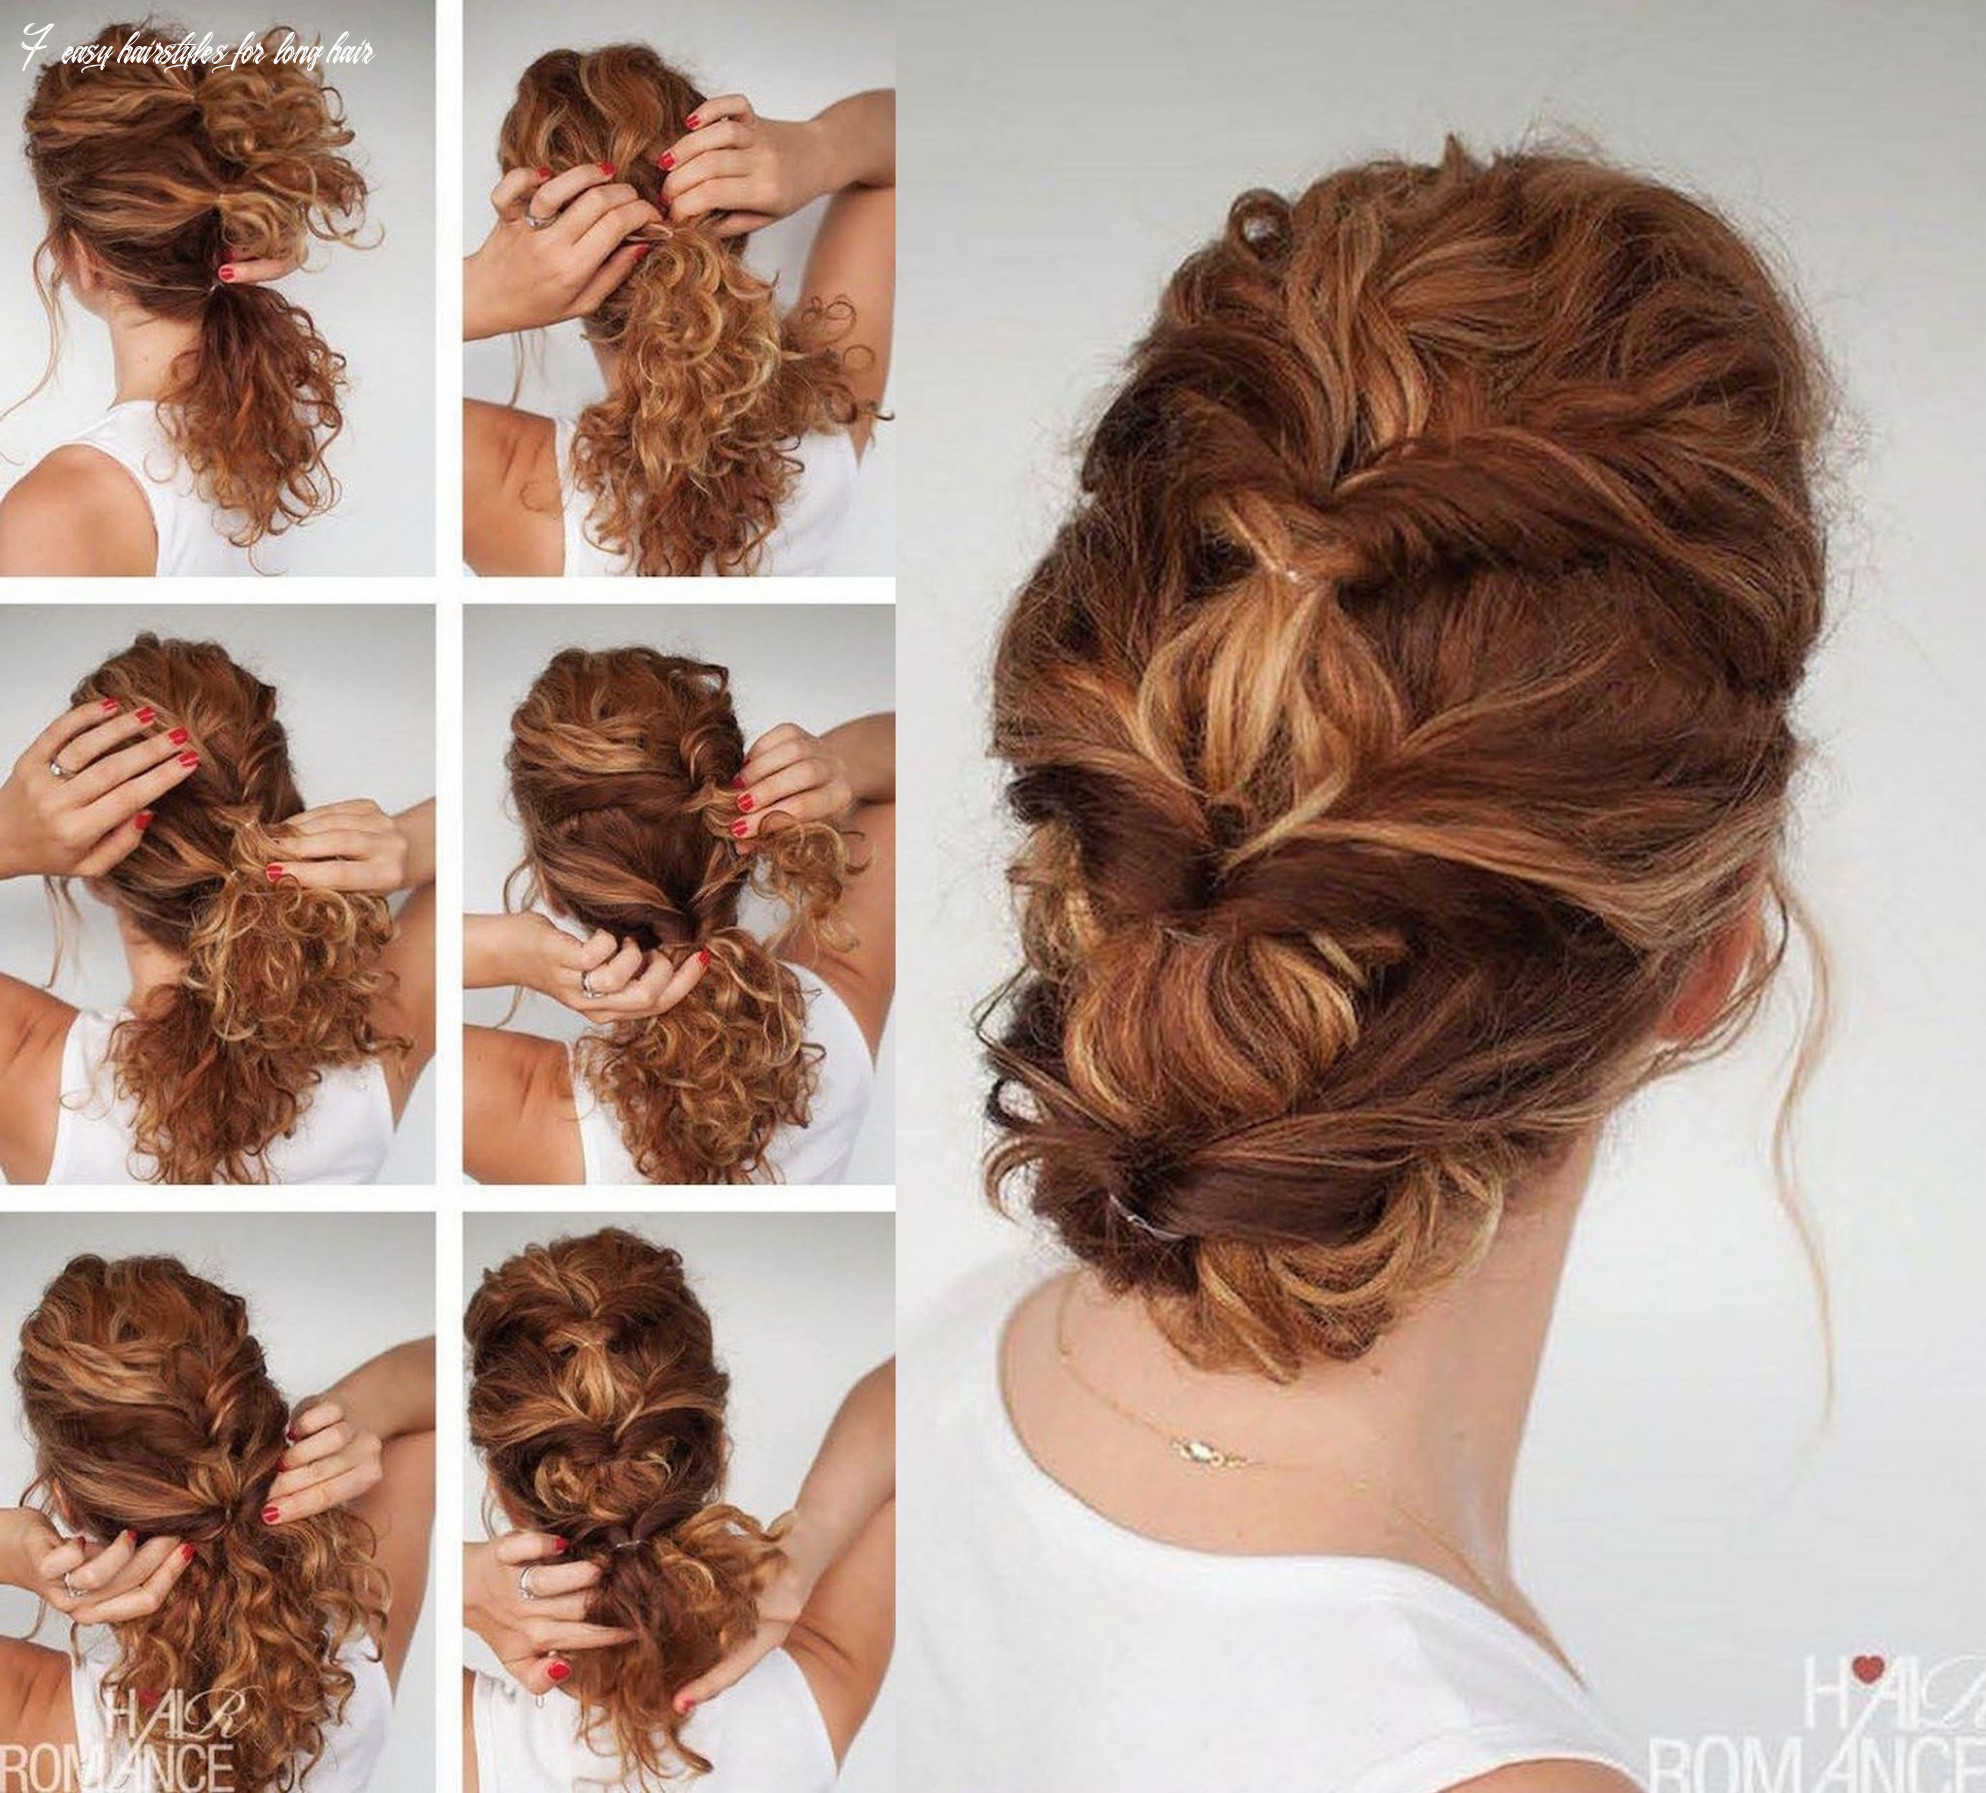 11 easy hairstyle tutorials for curly hair (with images) | curly